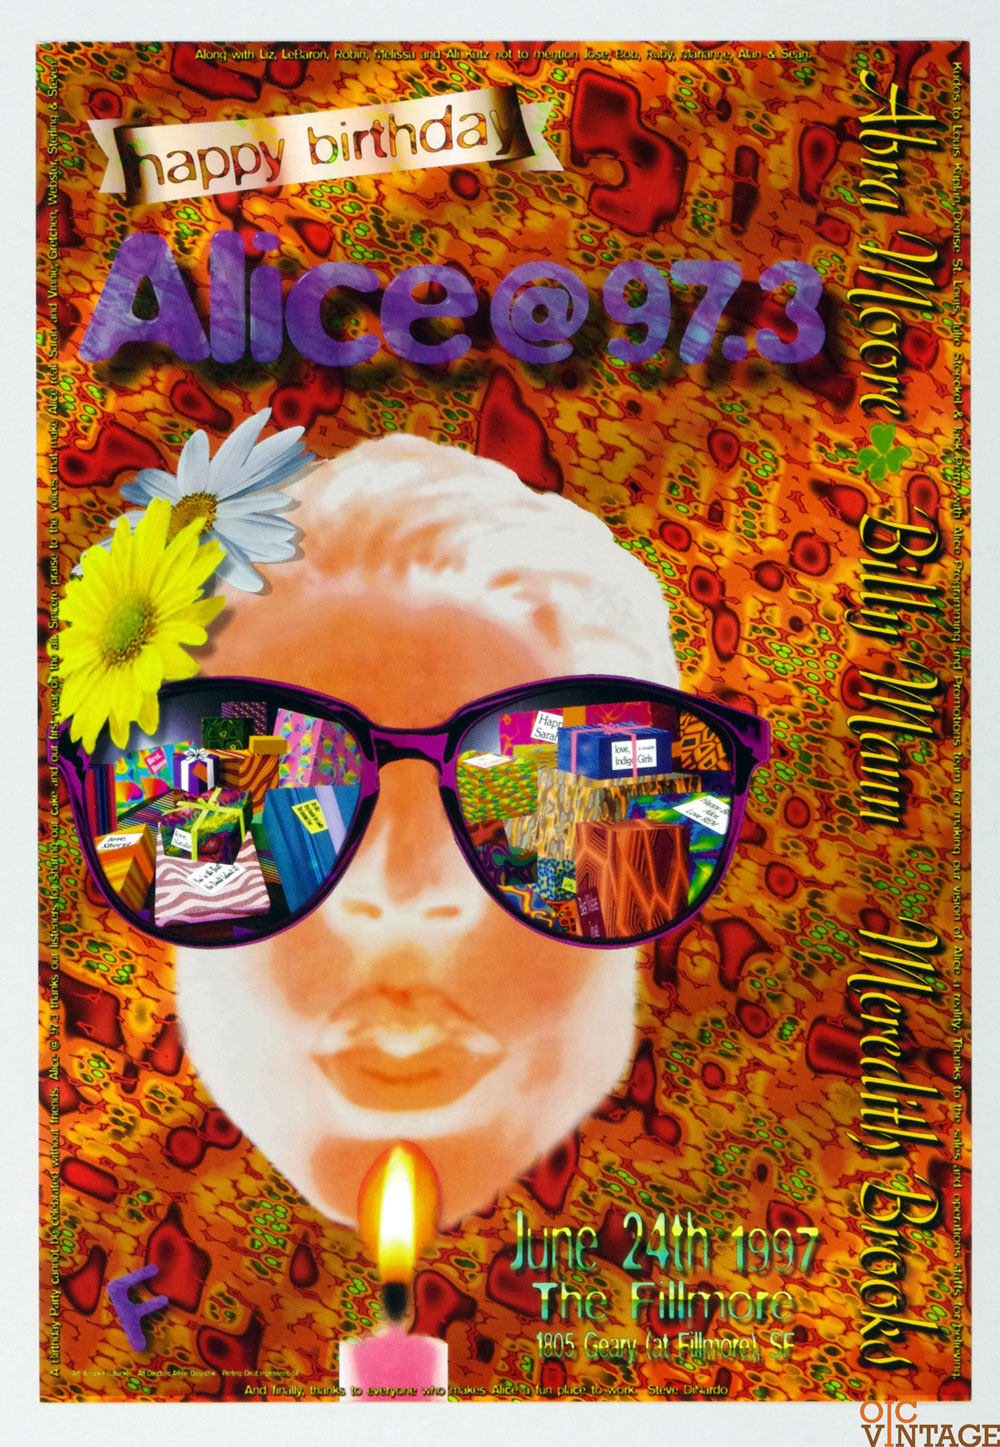 New Fillmore Poster Meredith Book Alice@97.3 FM Birthday Party 1997 Jun 24